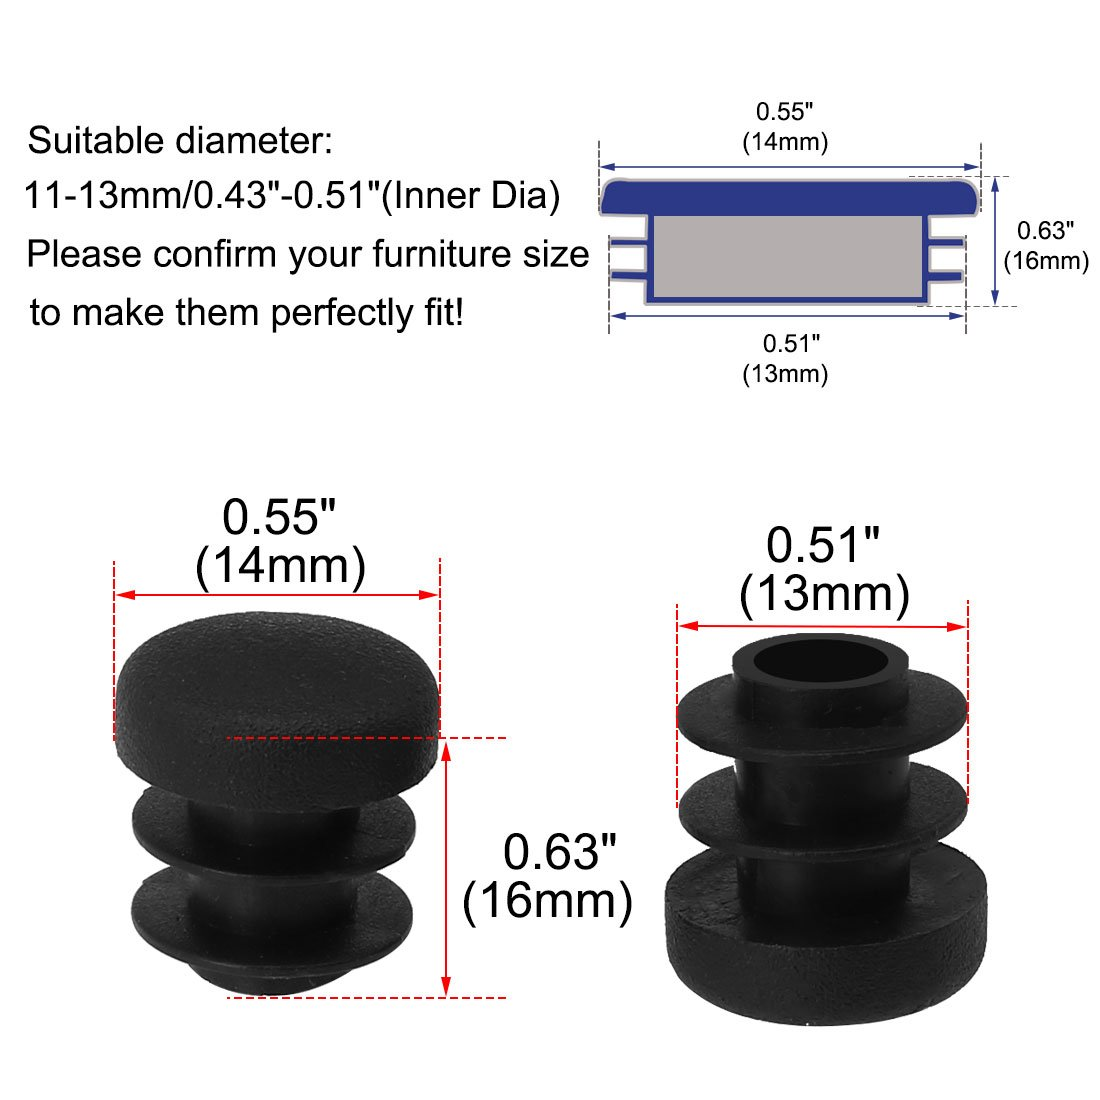 uxcell 1//2 14mm OD Plastic Round Tube Ribbed Inserts End Cover Caps 18pcs Floor Furniture Chair Table Protector 0.43-0.51 Inner Dia